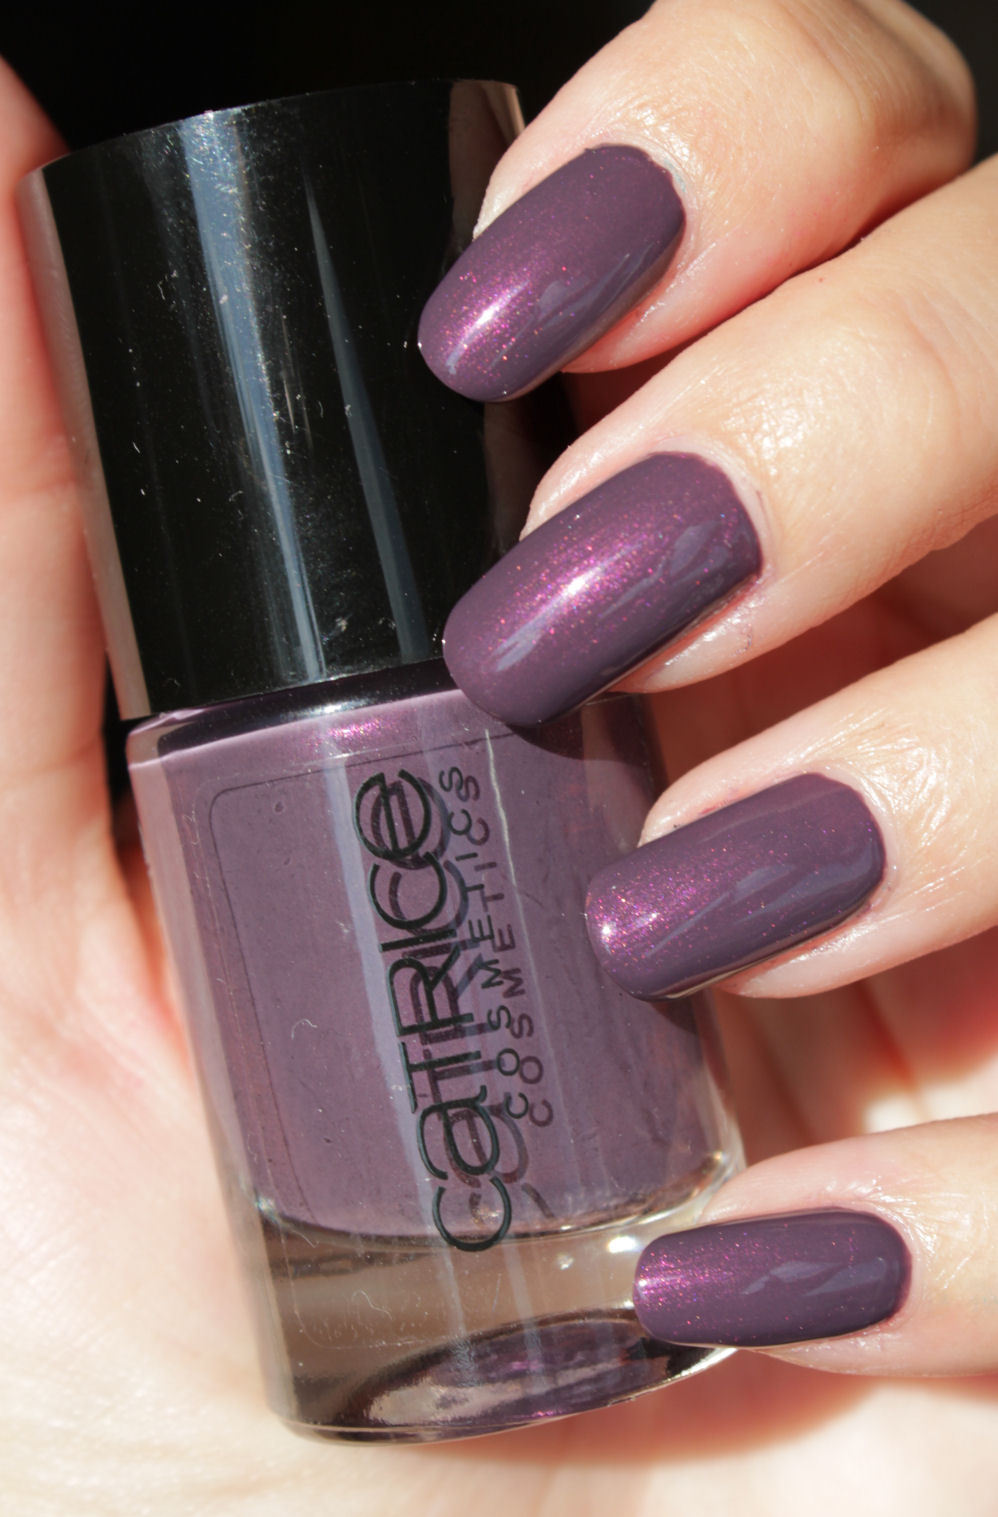 http://lacquediction.blogspot.de/2014/12/catrice-ultimate-nail-lacquer-72-auber.html